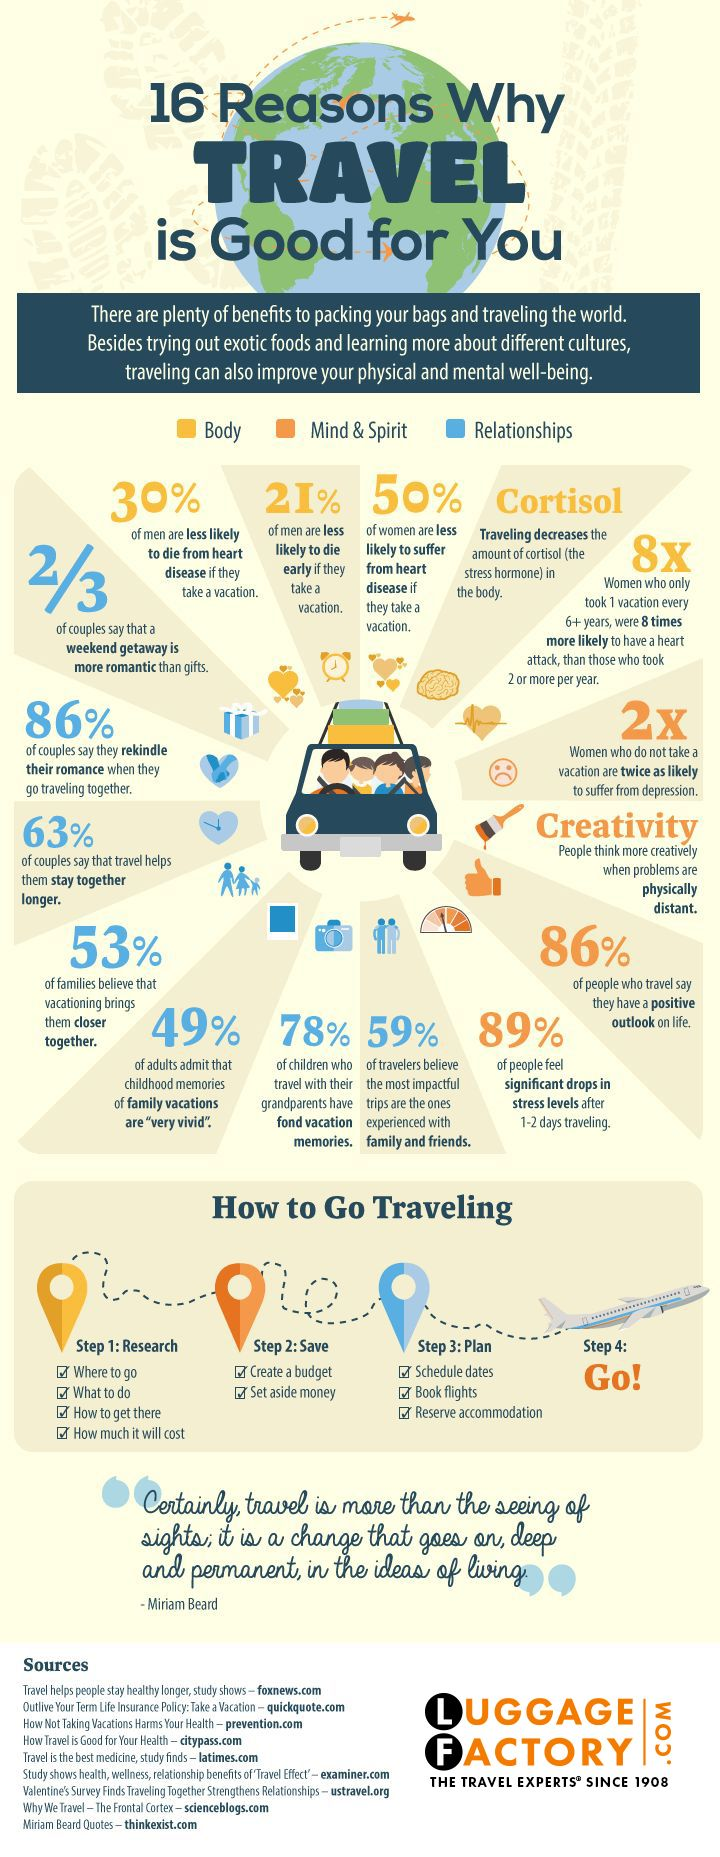 Reasons why Traveling is good for you by the travel